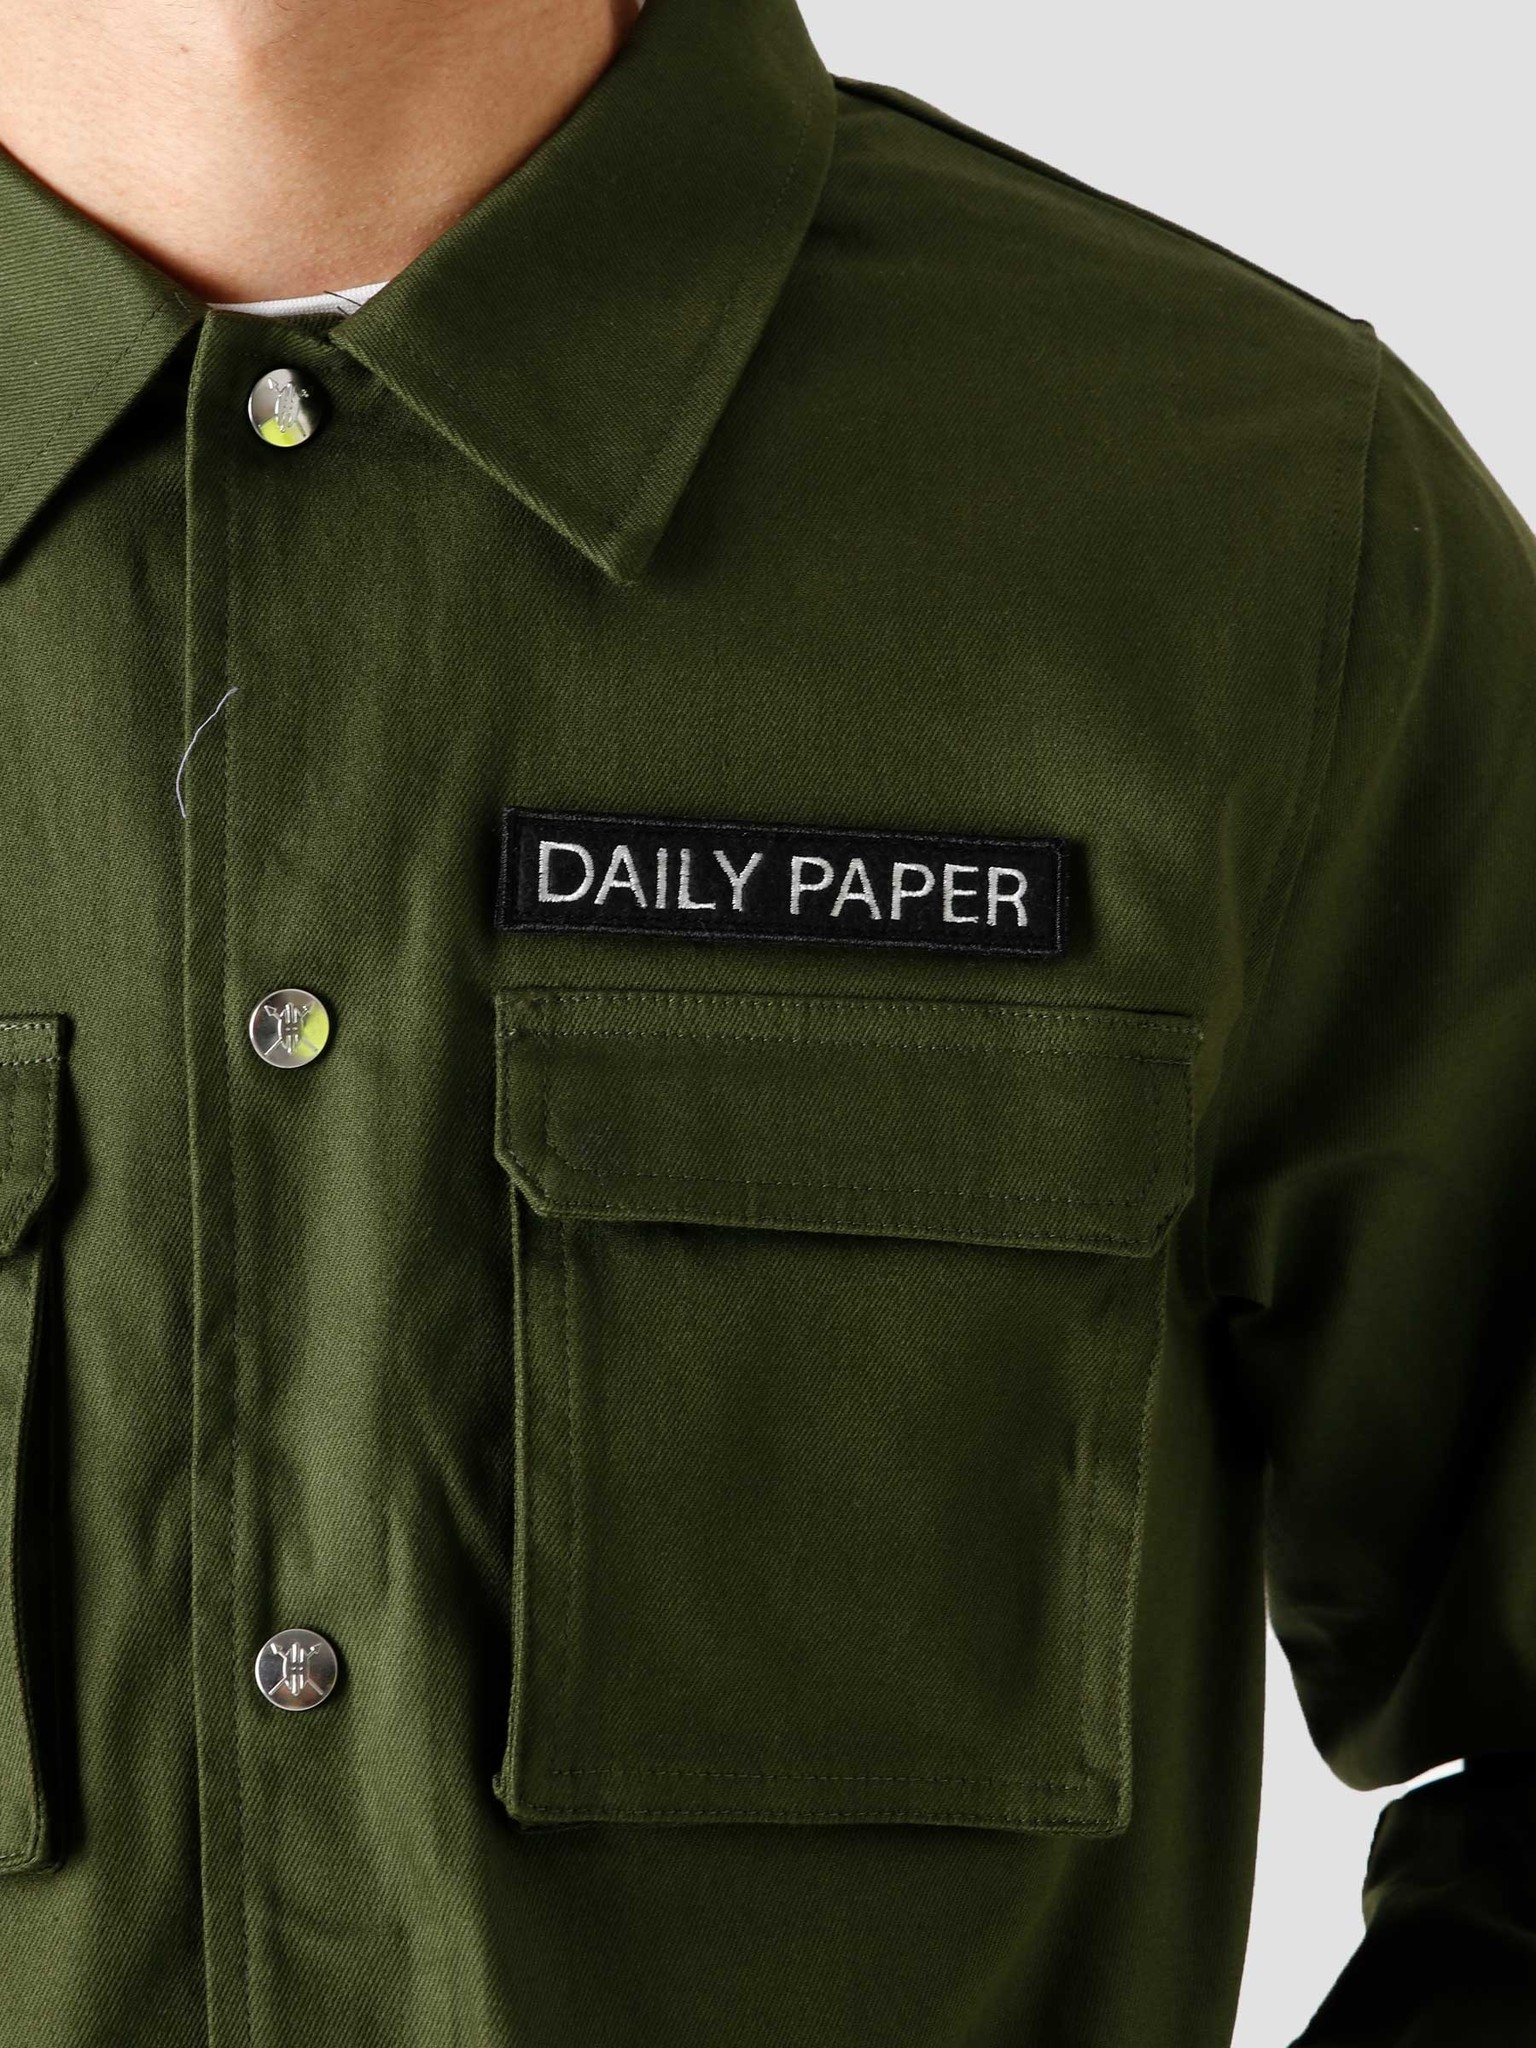 Daily Paper Daily Paper Coach Jacket Green 00N1PA05-04